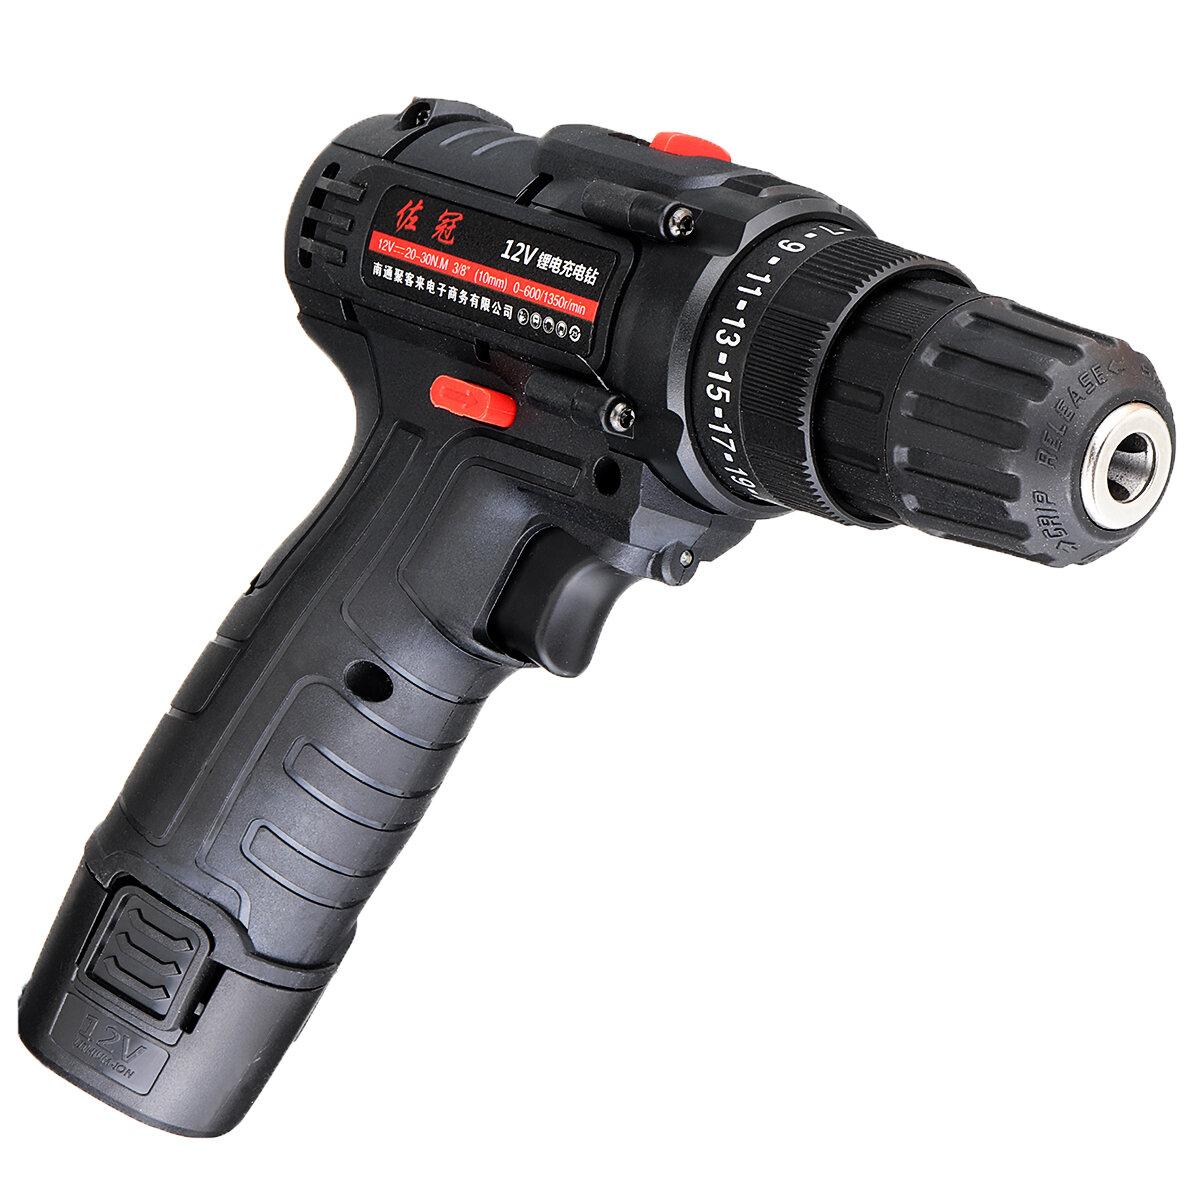 Shunzao 12V Cordless Multi-purposed 3 In 1 Imact Drill Driver Hammer 30Nm Electric Screwdriver Drill 2000mAh Li-ion Battery from xiaomi youpin - 5